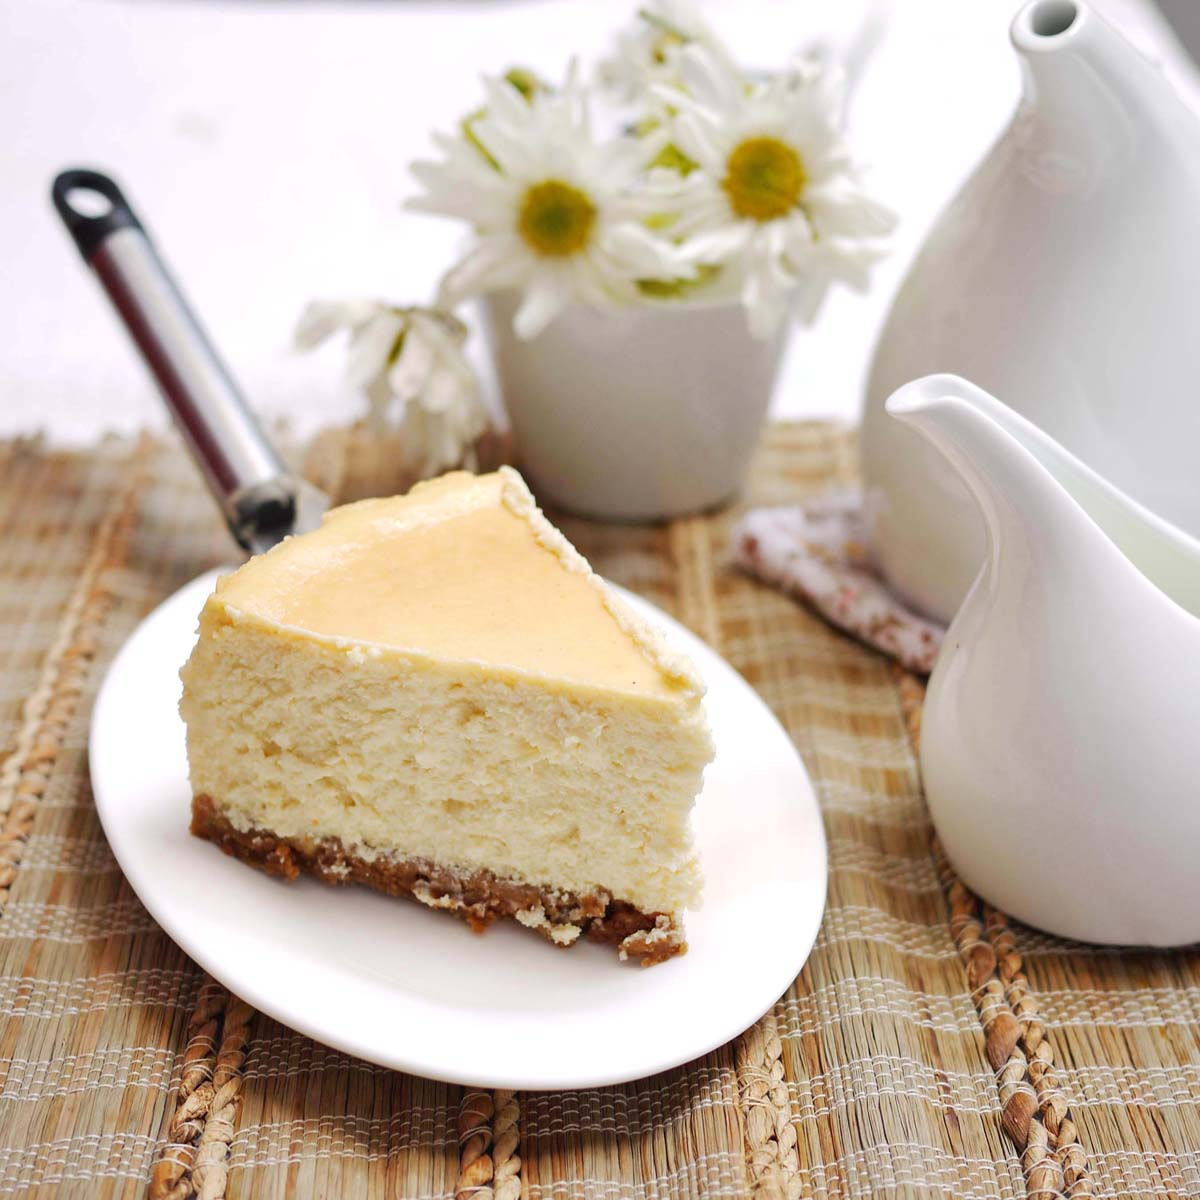 Luscious Gourmet Cheesecake picture